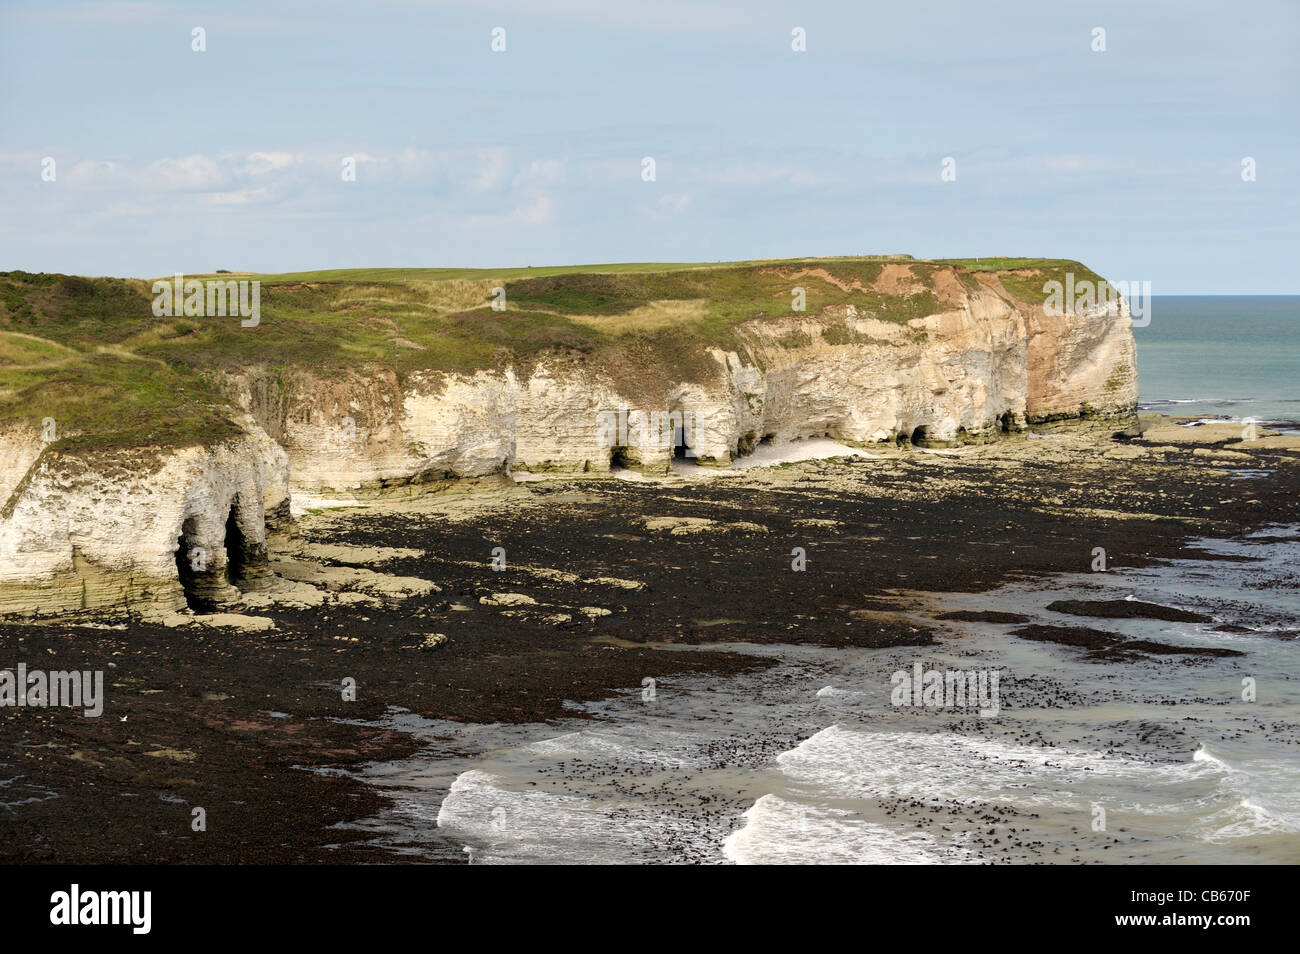 North over the chalk cliffs North Sea coast of Flamborough Head, East Yorkshire, England, UK. Low tide exposes shoreline - Stock Image